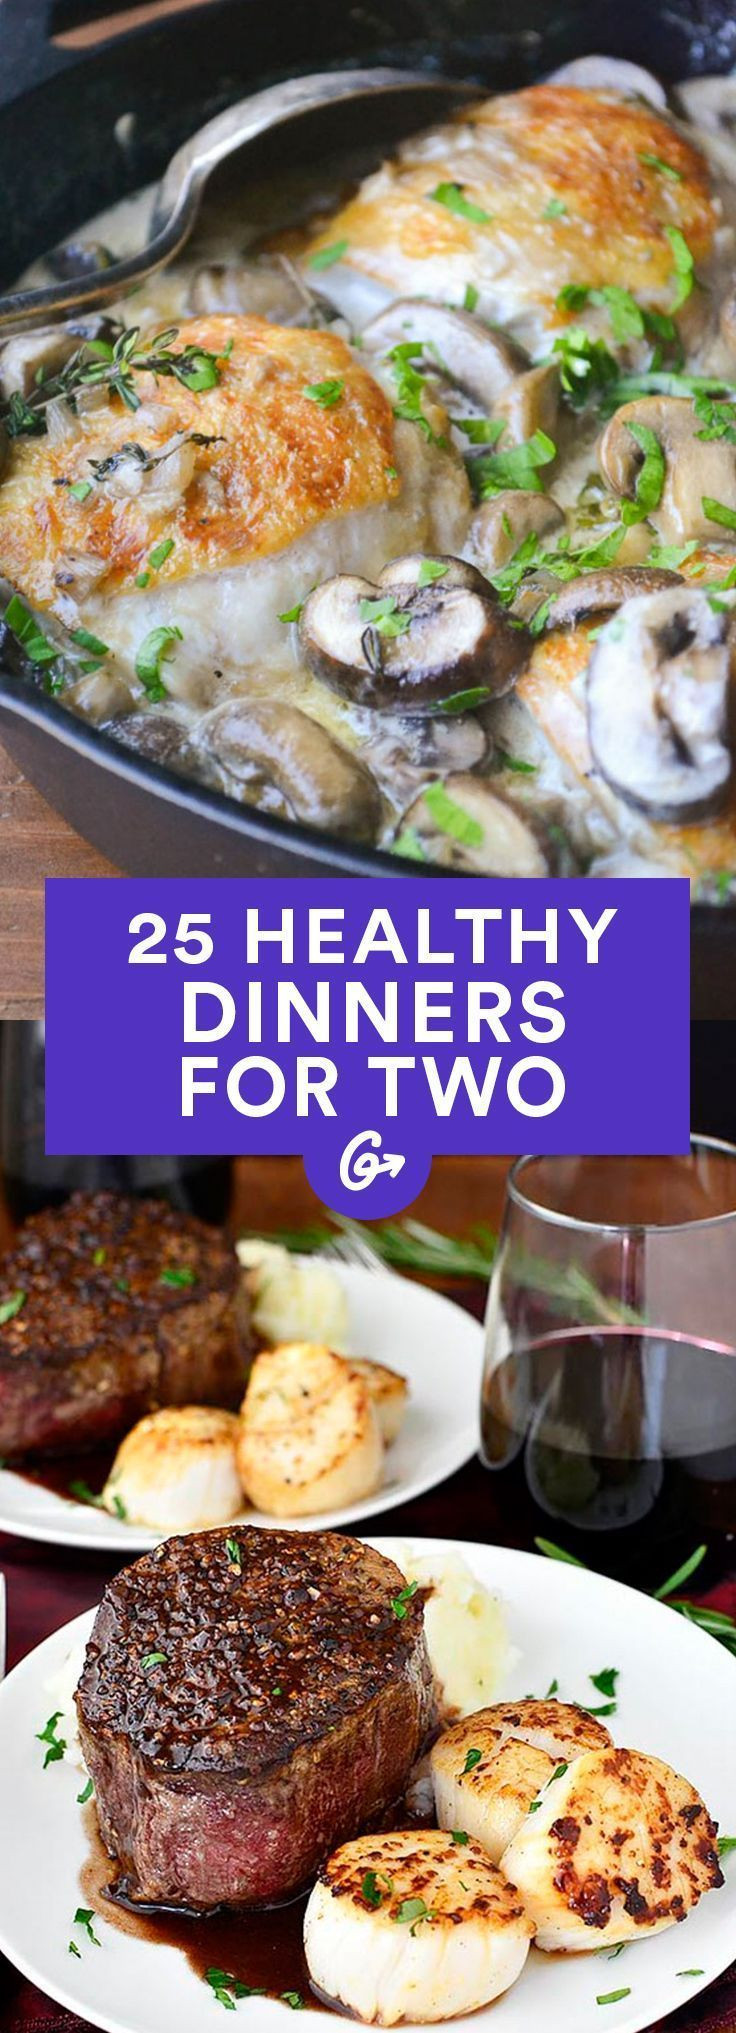 Healthy Dinners For Two On A Budget  100 Healthy Dinner Recipes on Pinterest